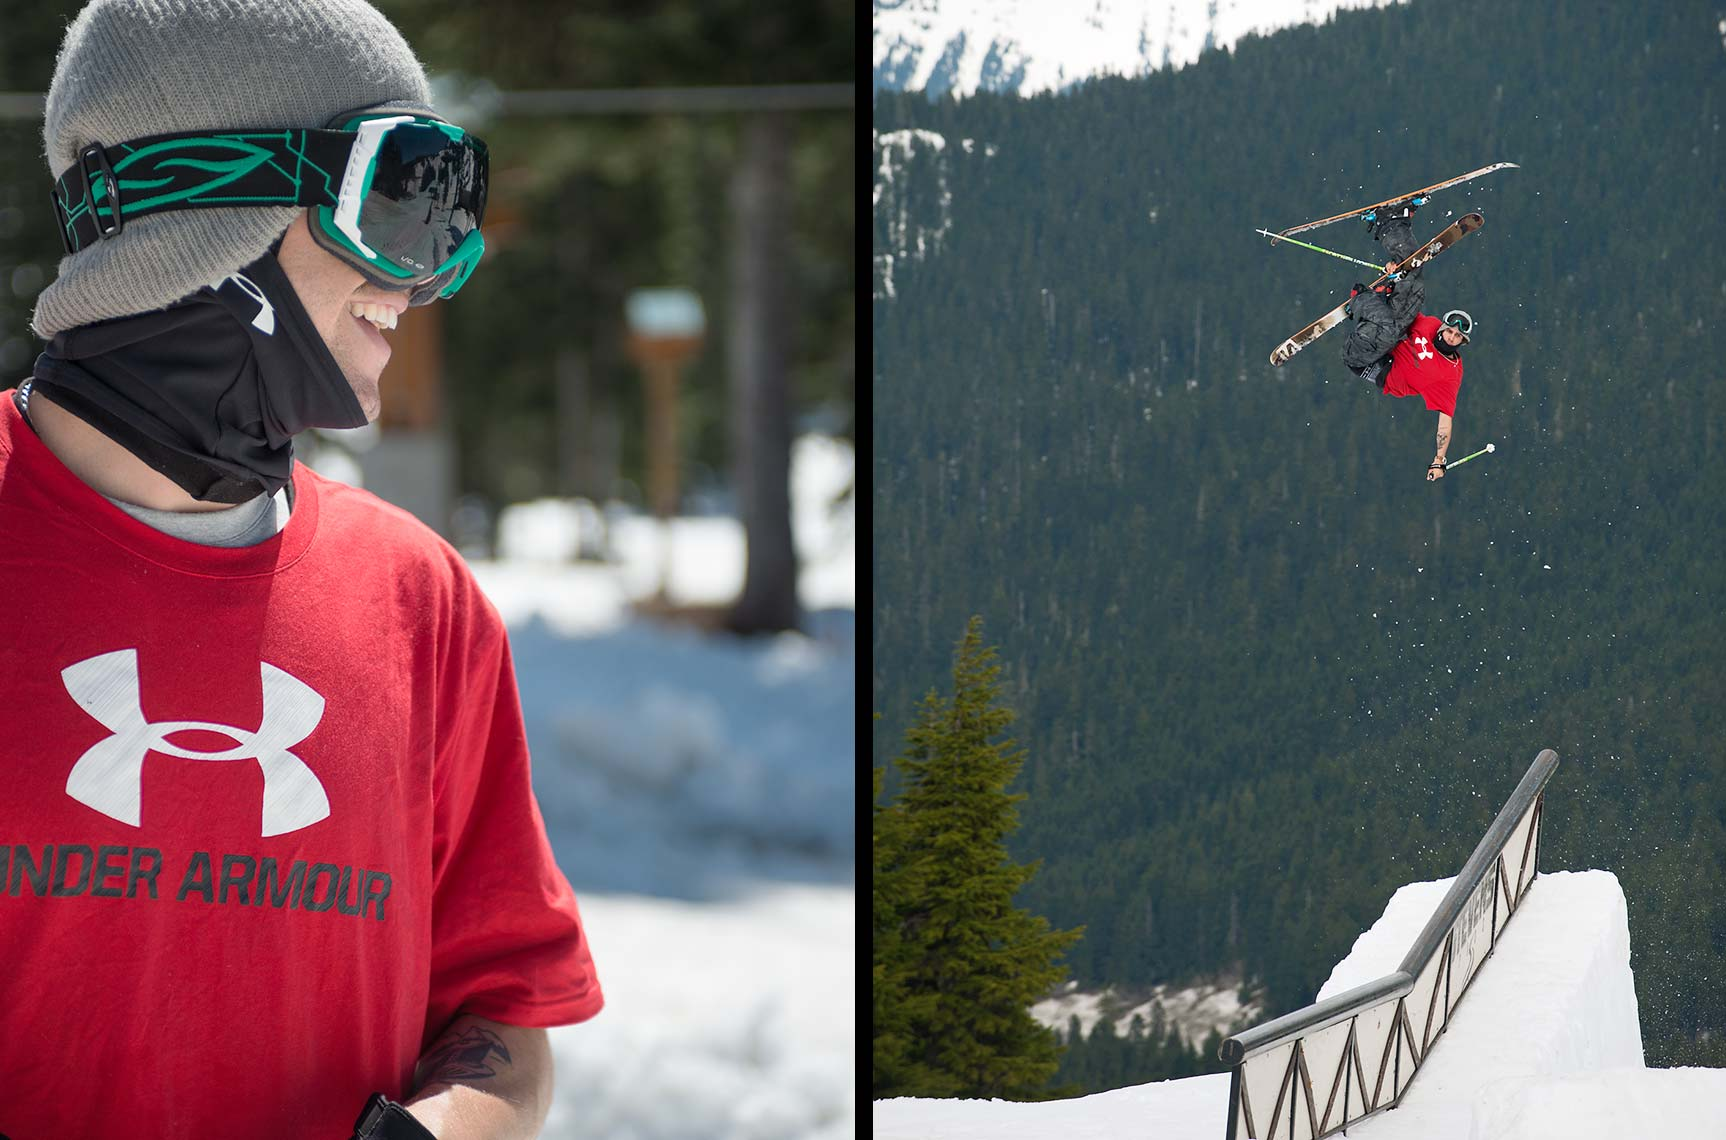 Ian-Coble-Skiing-Bobby-Brown-Terrain-Park